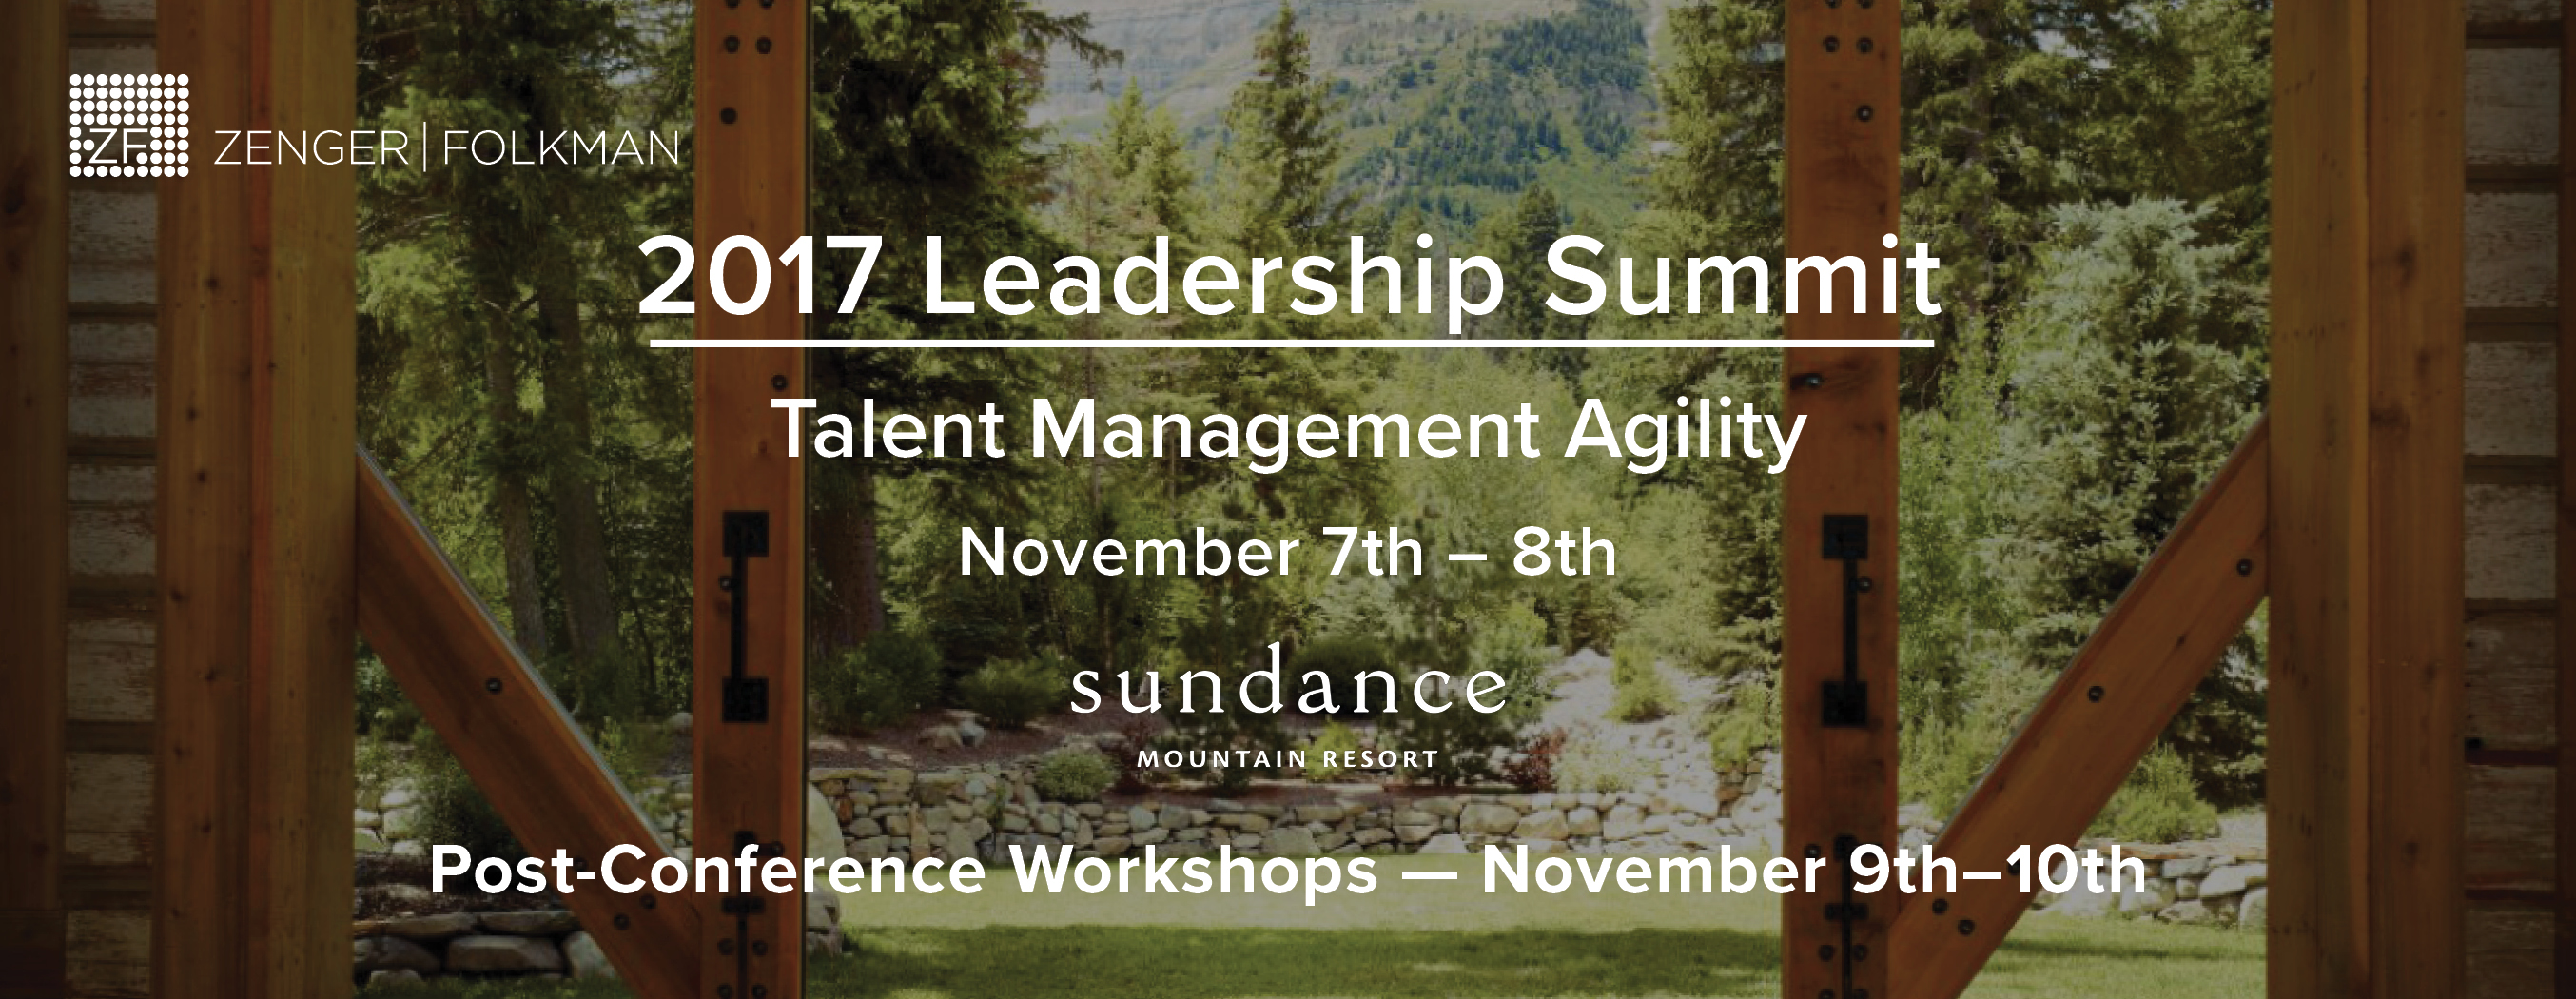 Zenger Folkman's 2017 Leadership Summit